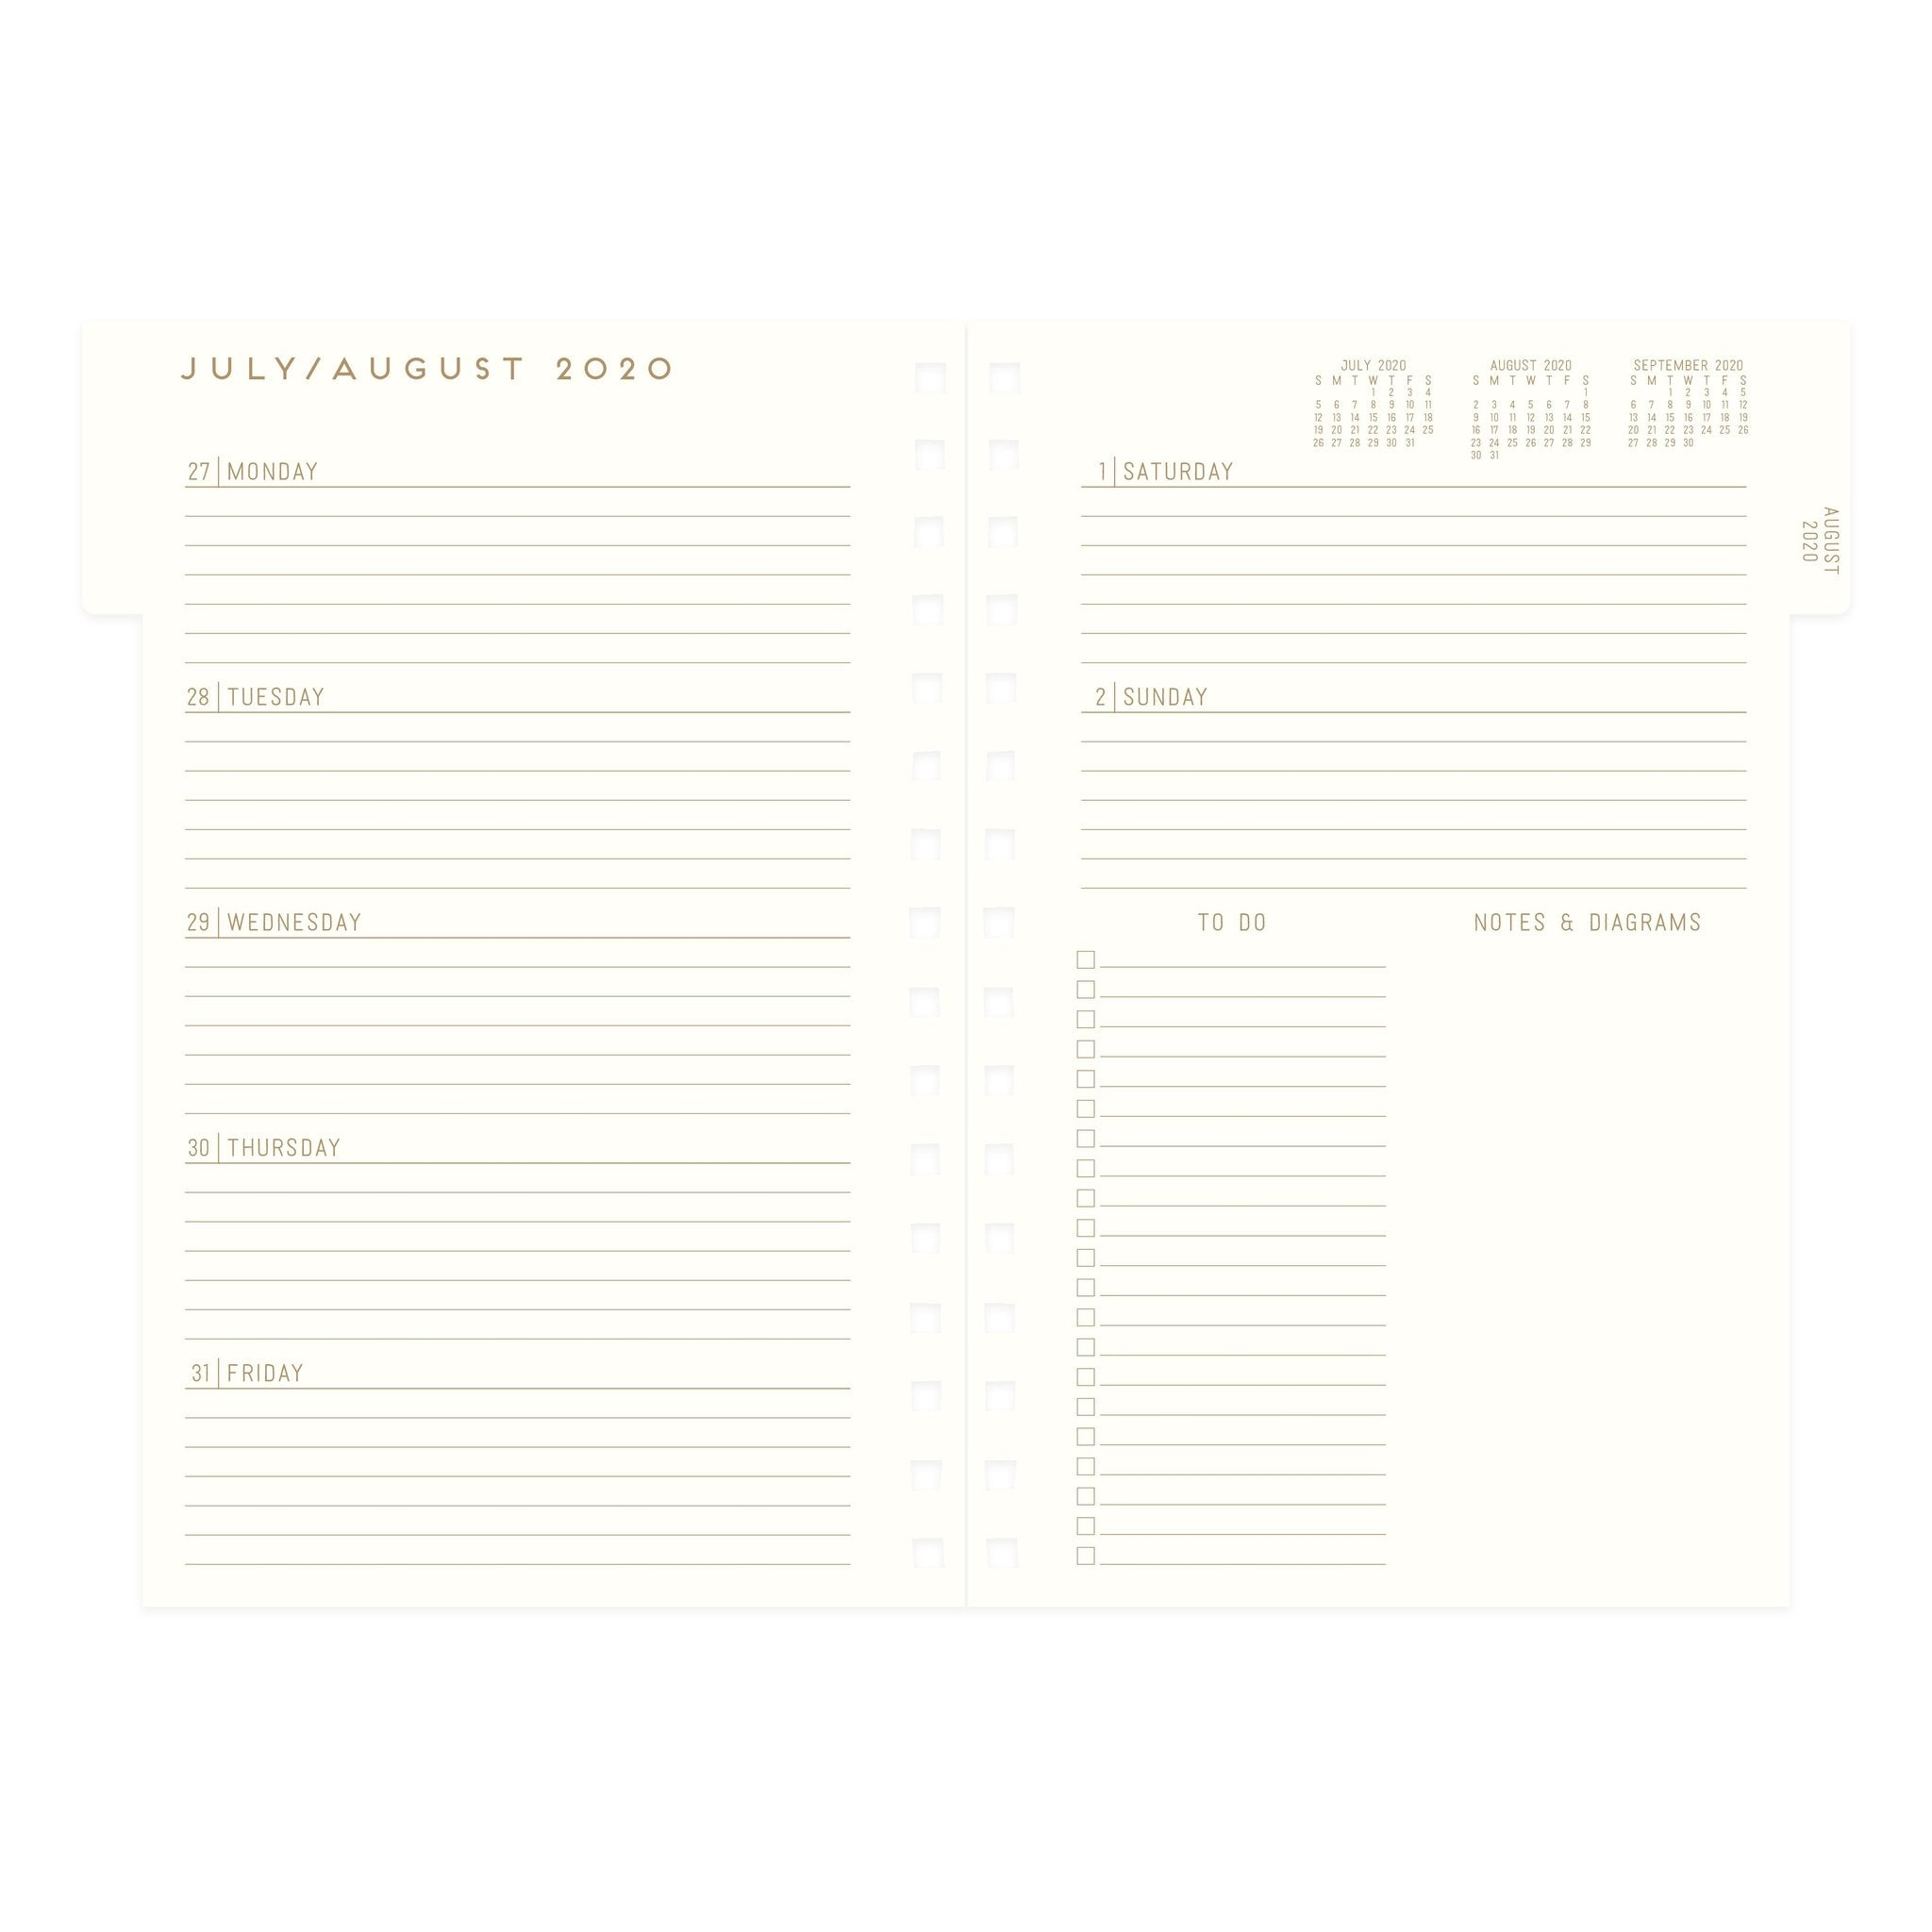 Agenda Printed 2021 Derby Warm - 17 Month Hardcover Twin Wire Monthly Planner 2020-2021